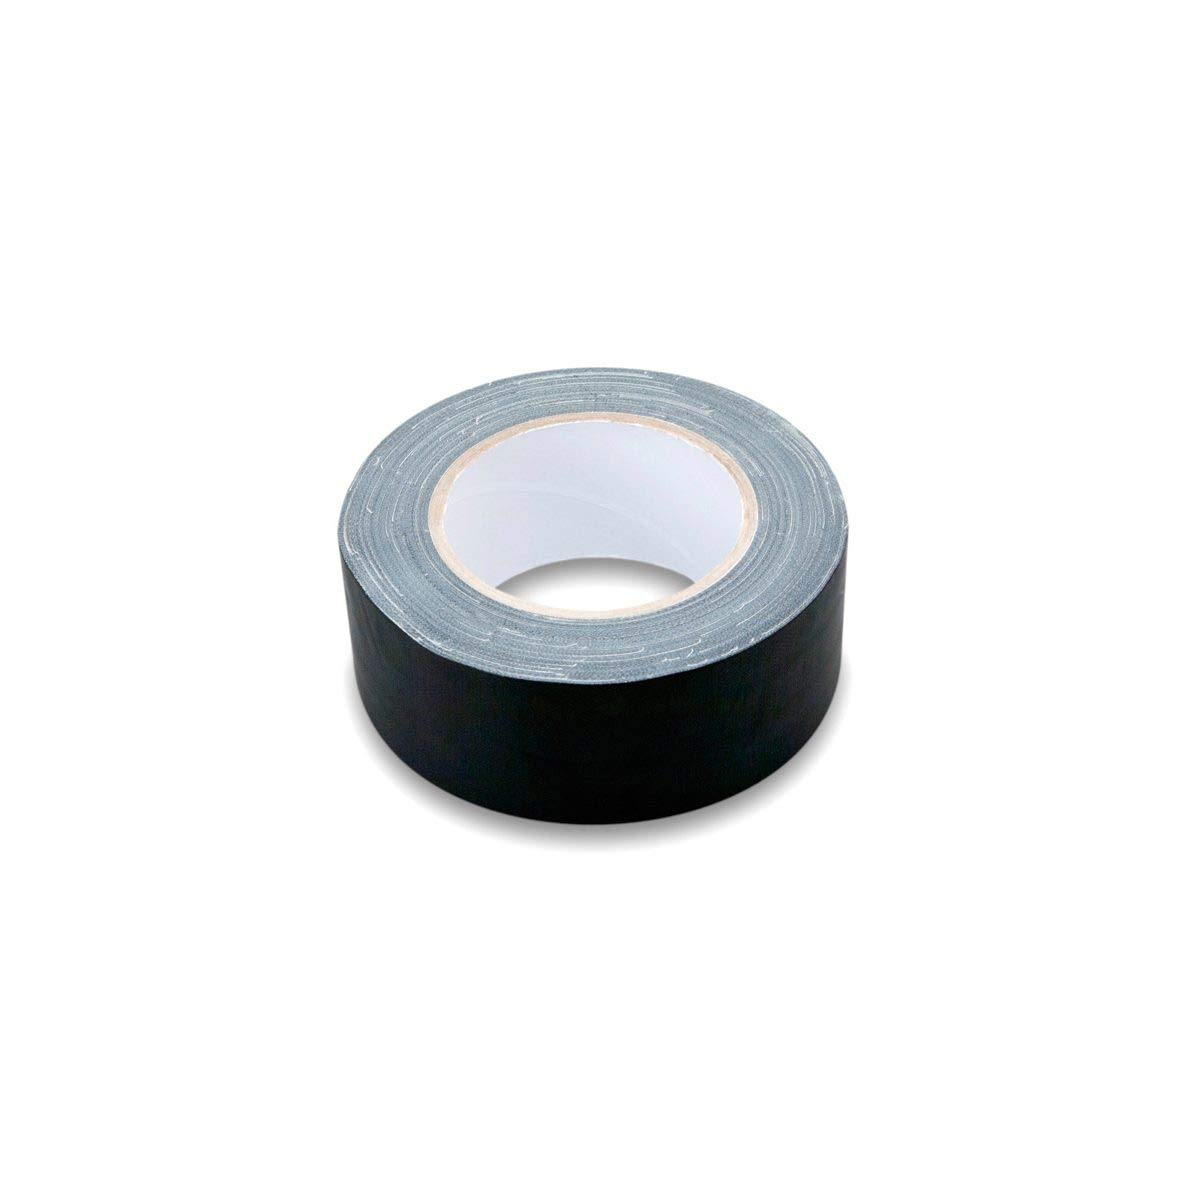 Hosa GFT459 Gaffers Tape 4 Inch Black, 60 Yard Accessory Consumer Accessories